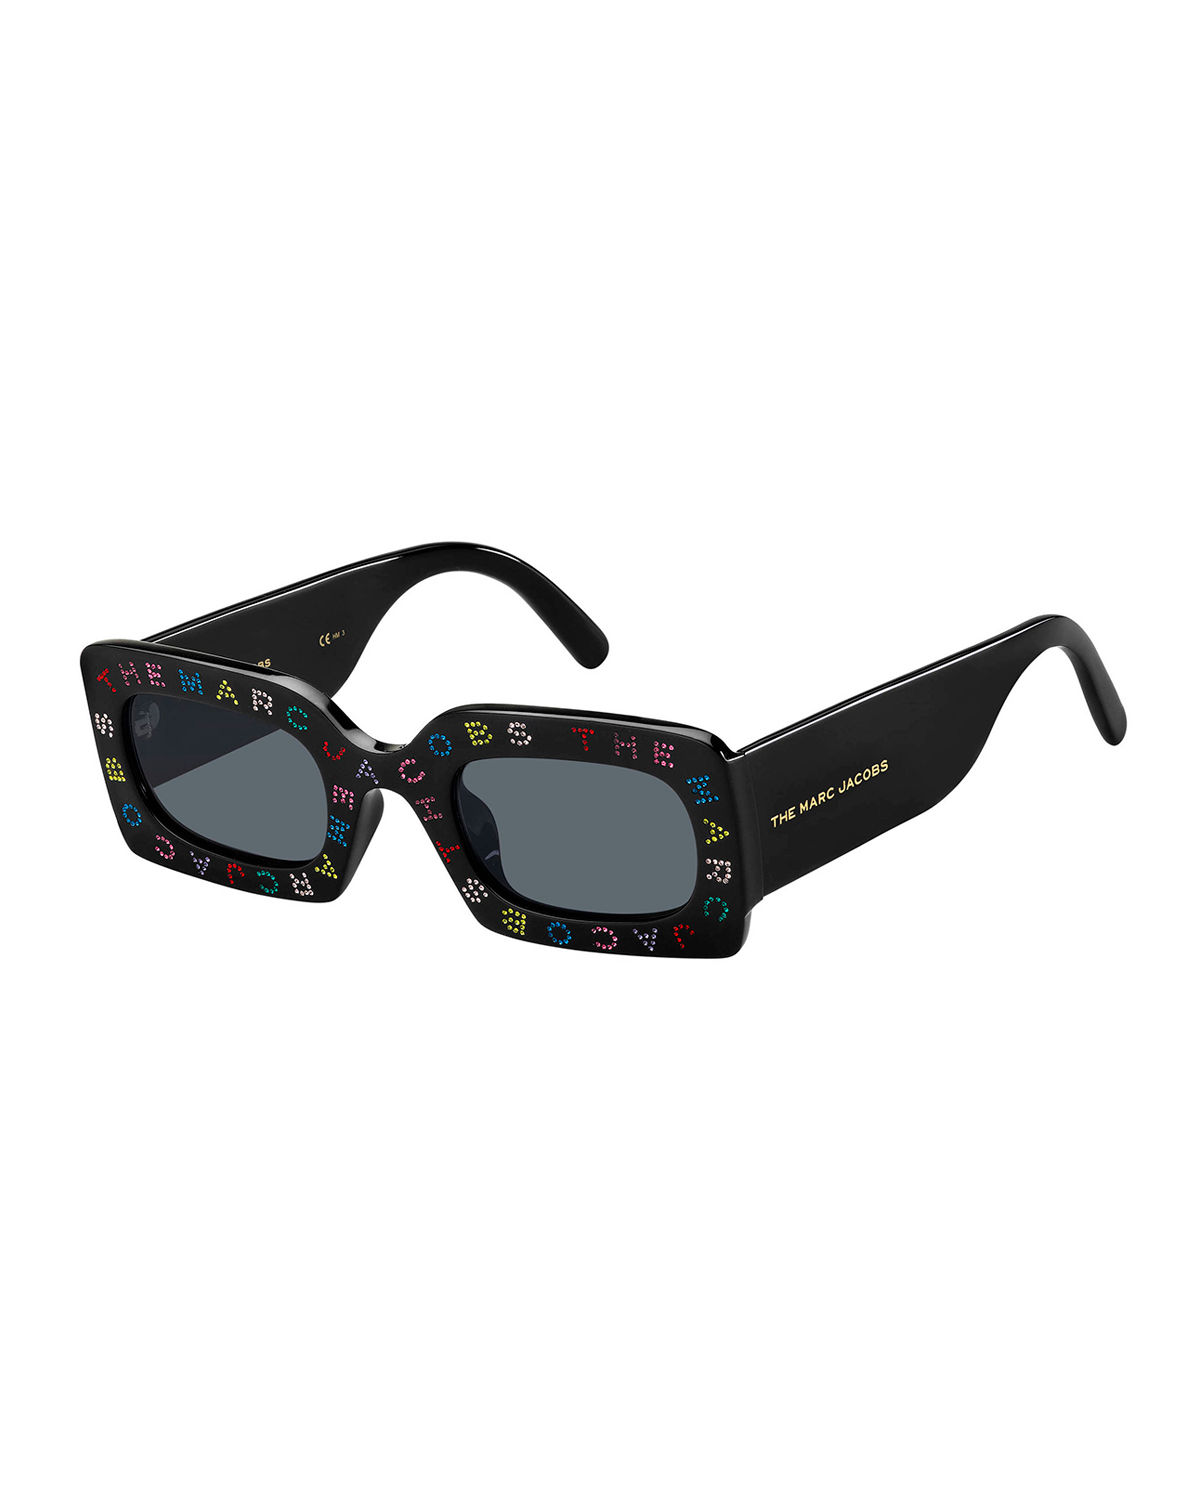 The Marc Jacobs MULTICOLOR CRYSTAL LOGO RECTANGLE SUNGLASSES